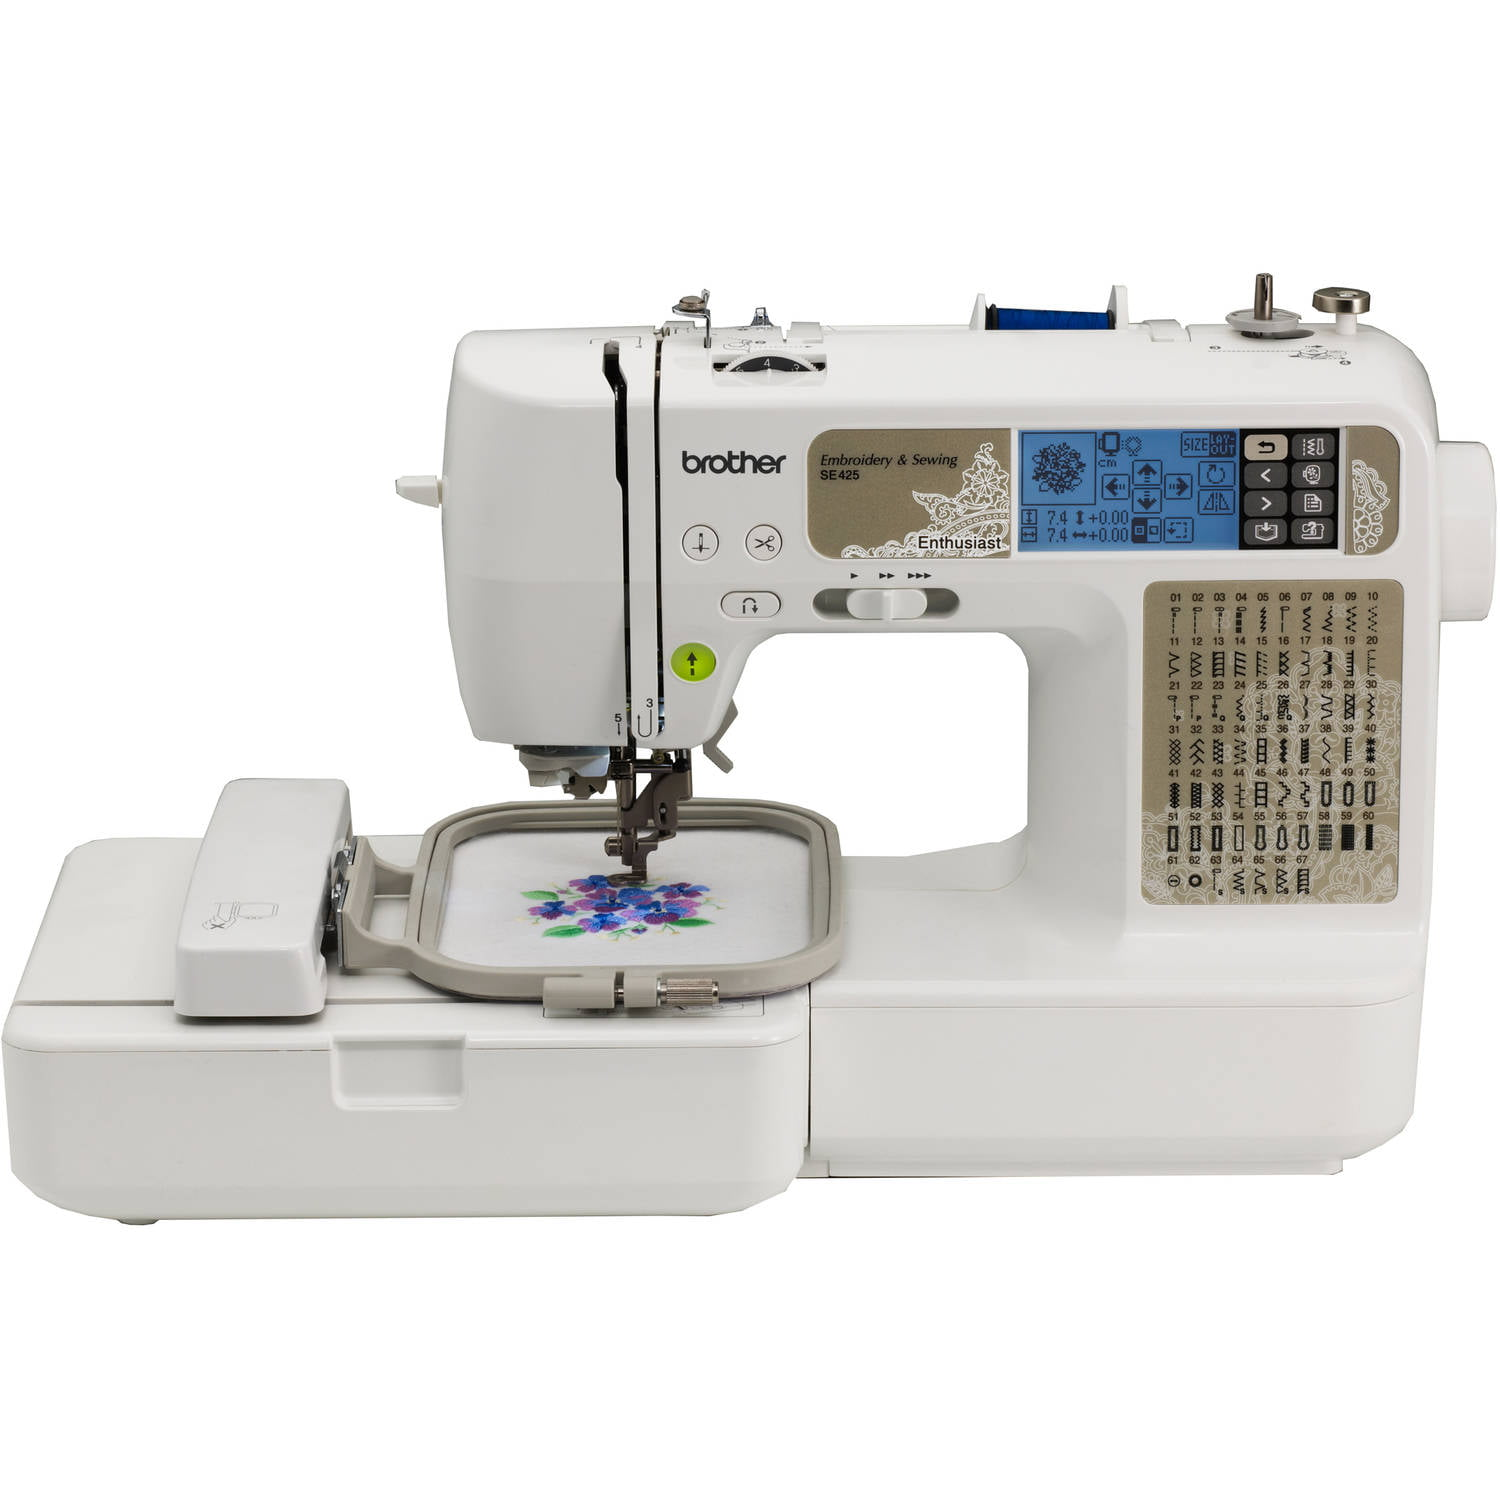 Brother Sewing and Embroidery Machine, SE425 - Walmart.com